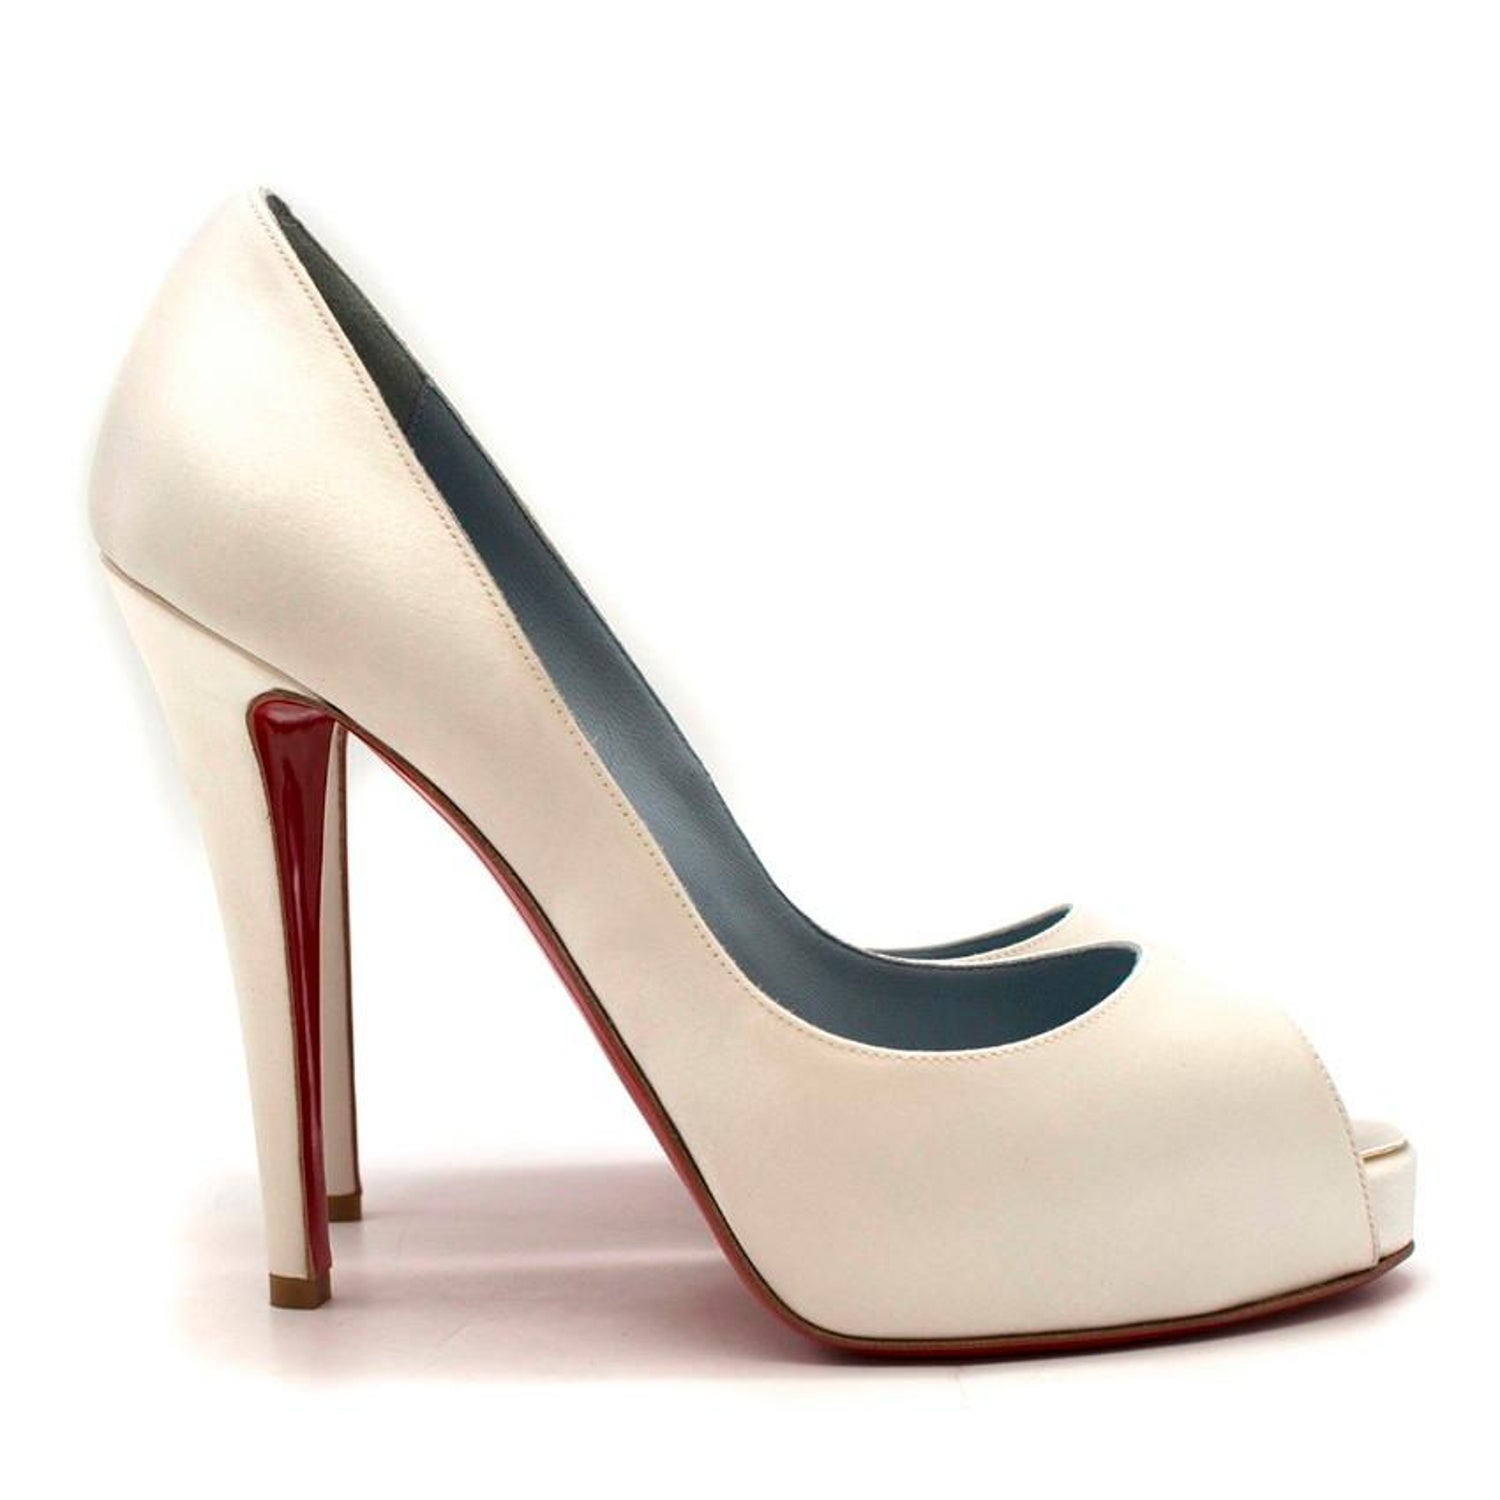 43f3123958f Christian Louboutin Very Prive 120mm off-white satin pumps US 8.5 For Sale  at 1stdibs